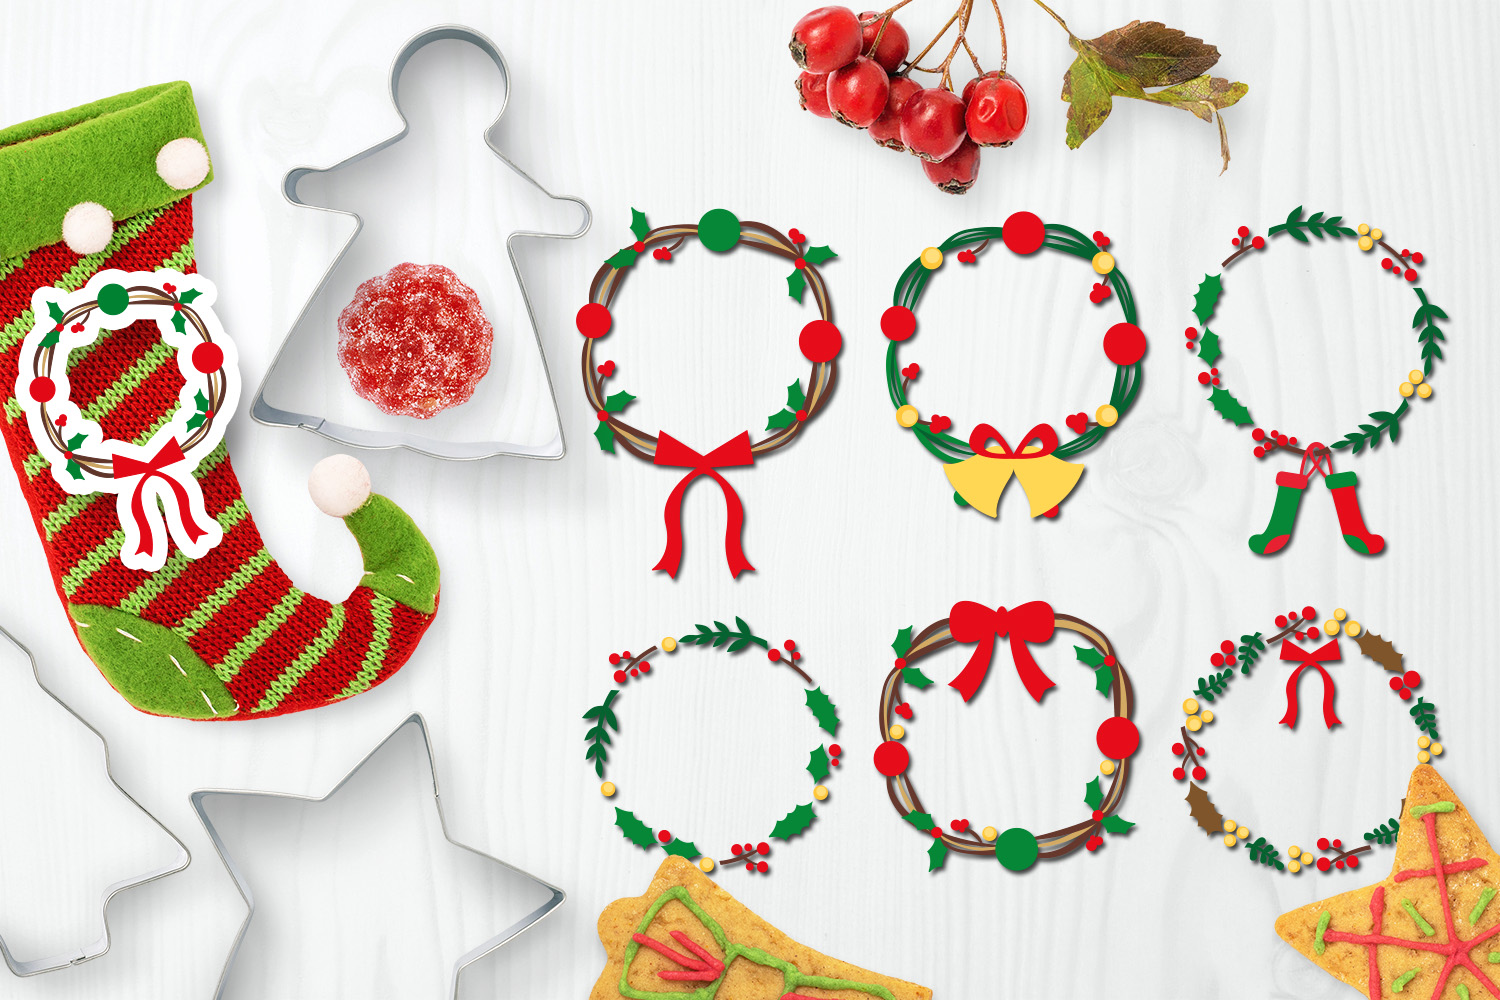 Download Free Christmas Wreath Graphic By Darrakadisha Creative Fabrica for Cricut Explore, Silhouette and other cutting machines.